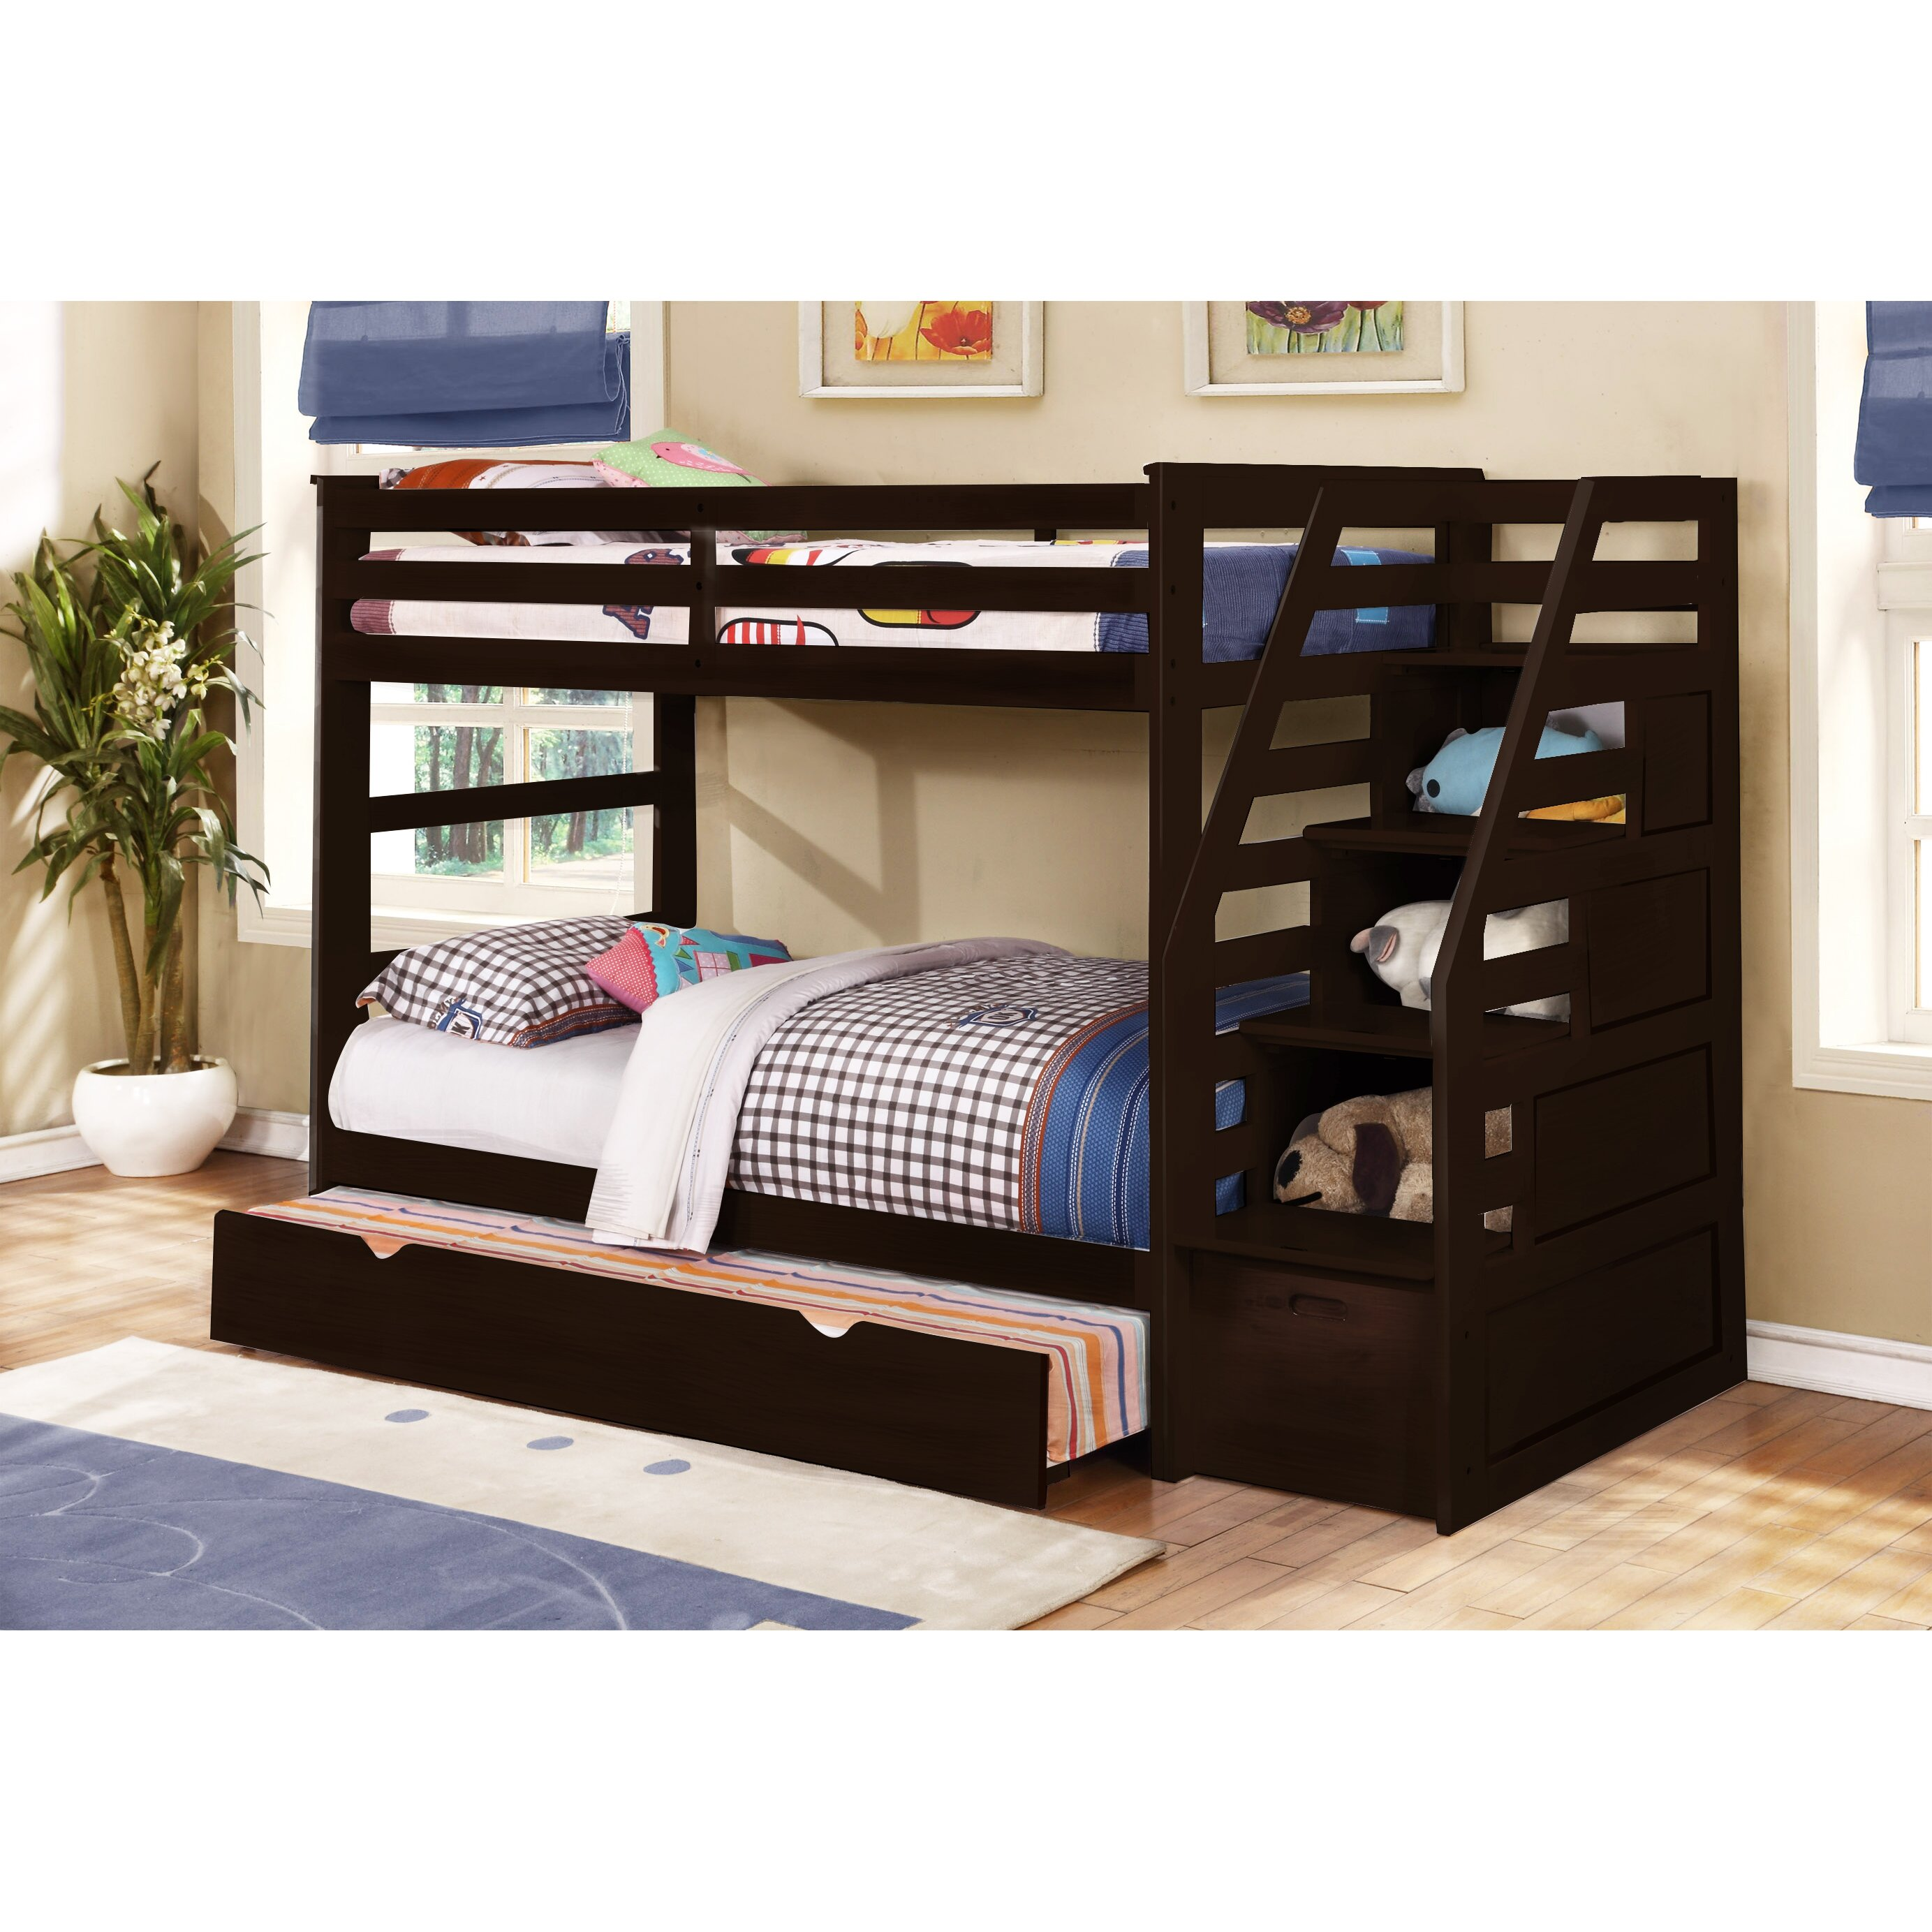 wildon home cosmo twin bunk bed with trundle and storage. Black Bedroom Furniture Sets. Home Design Ideas